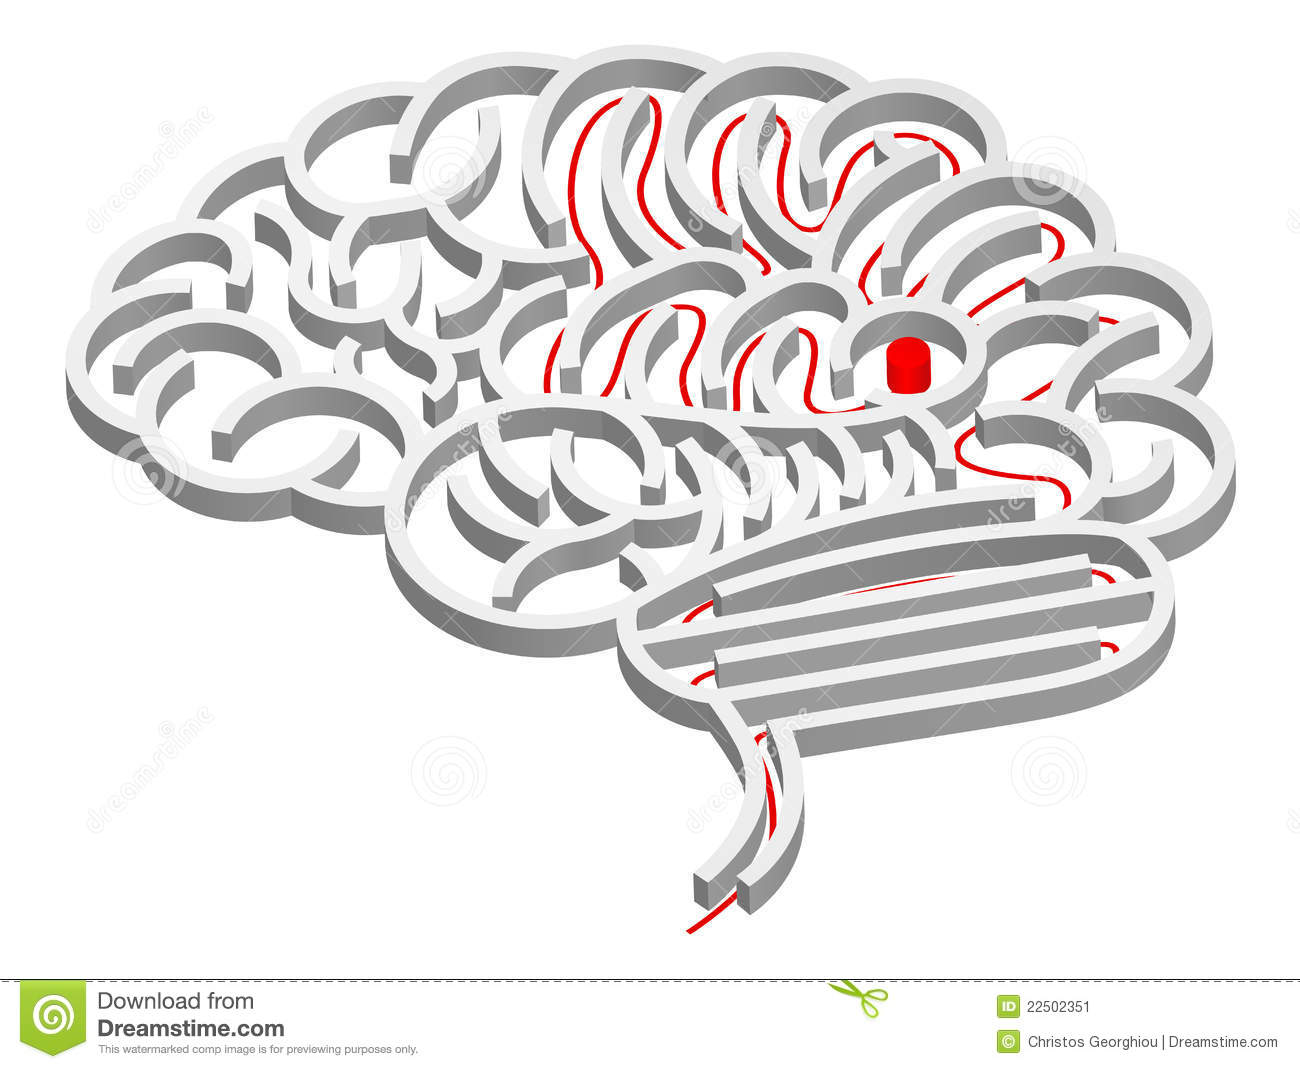 Brain maze concept stock vector. Image of labyrinth